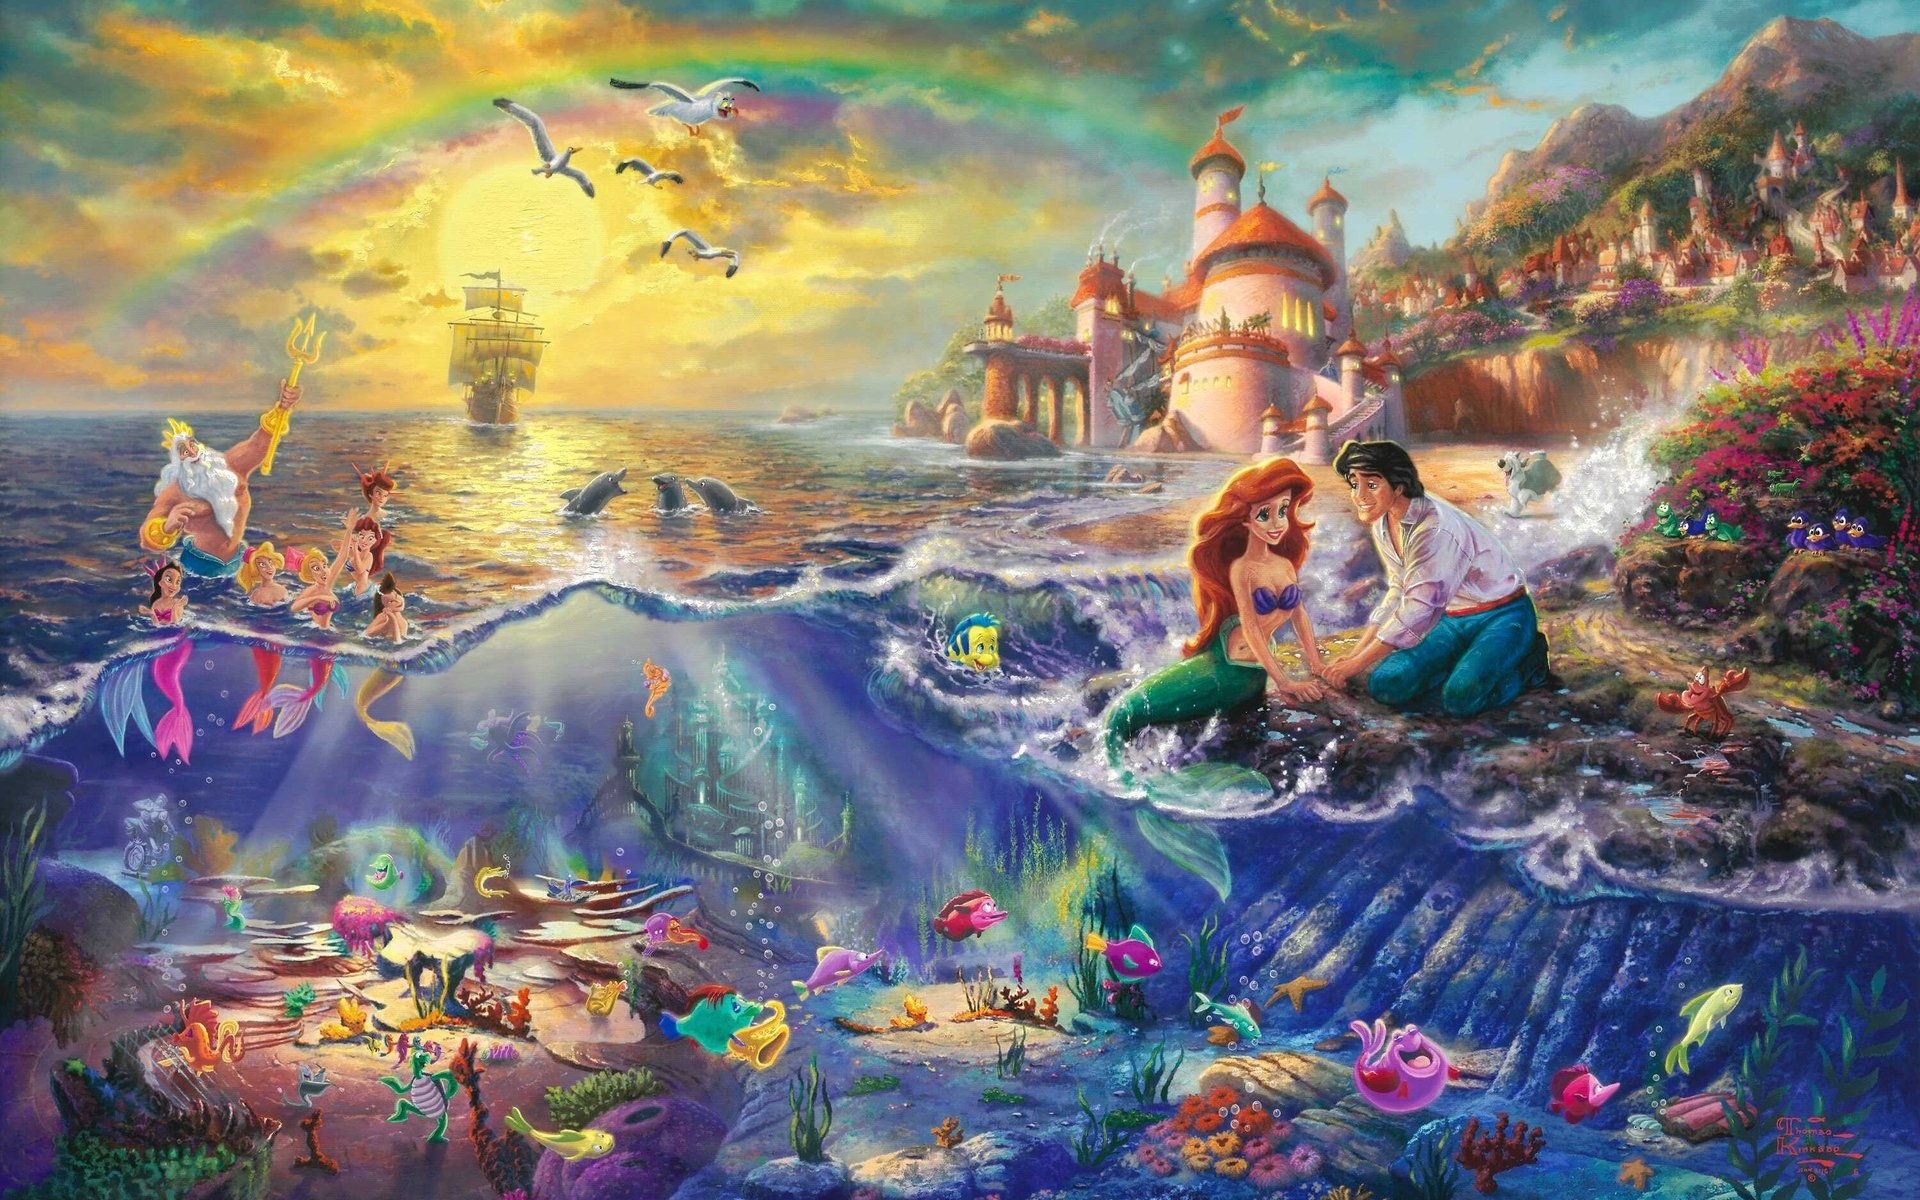 60 the little mermaid hd wallpapers | background images - wallpaper